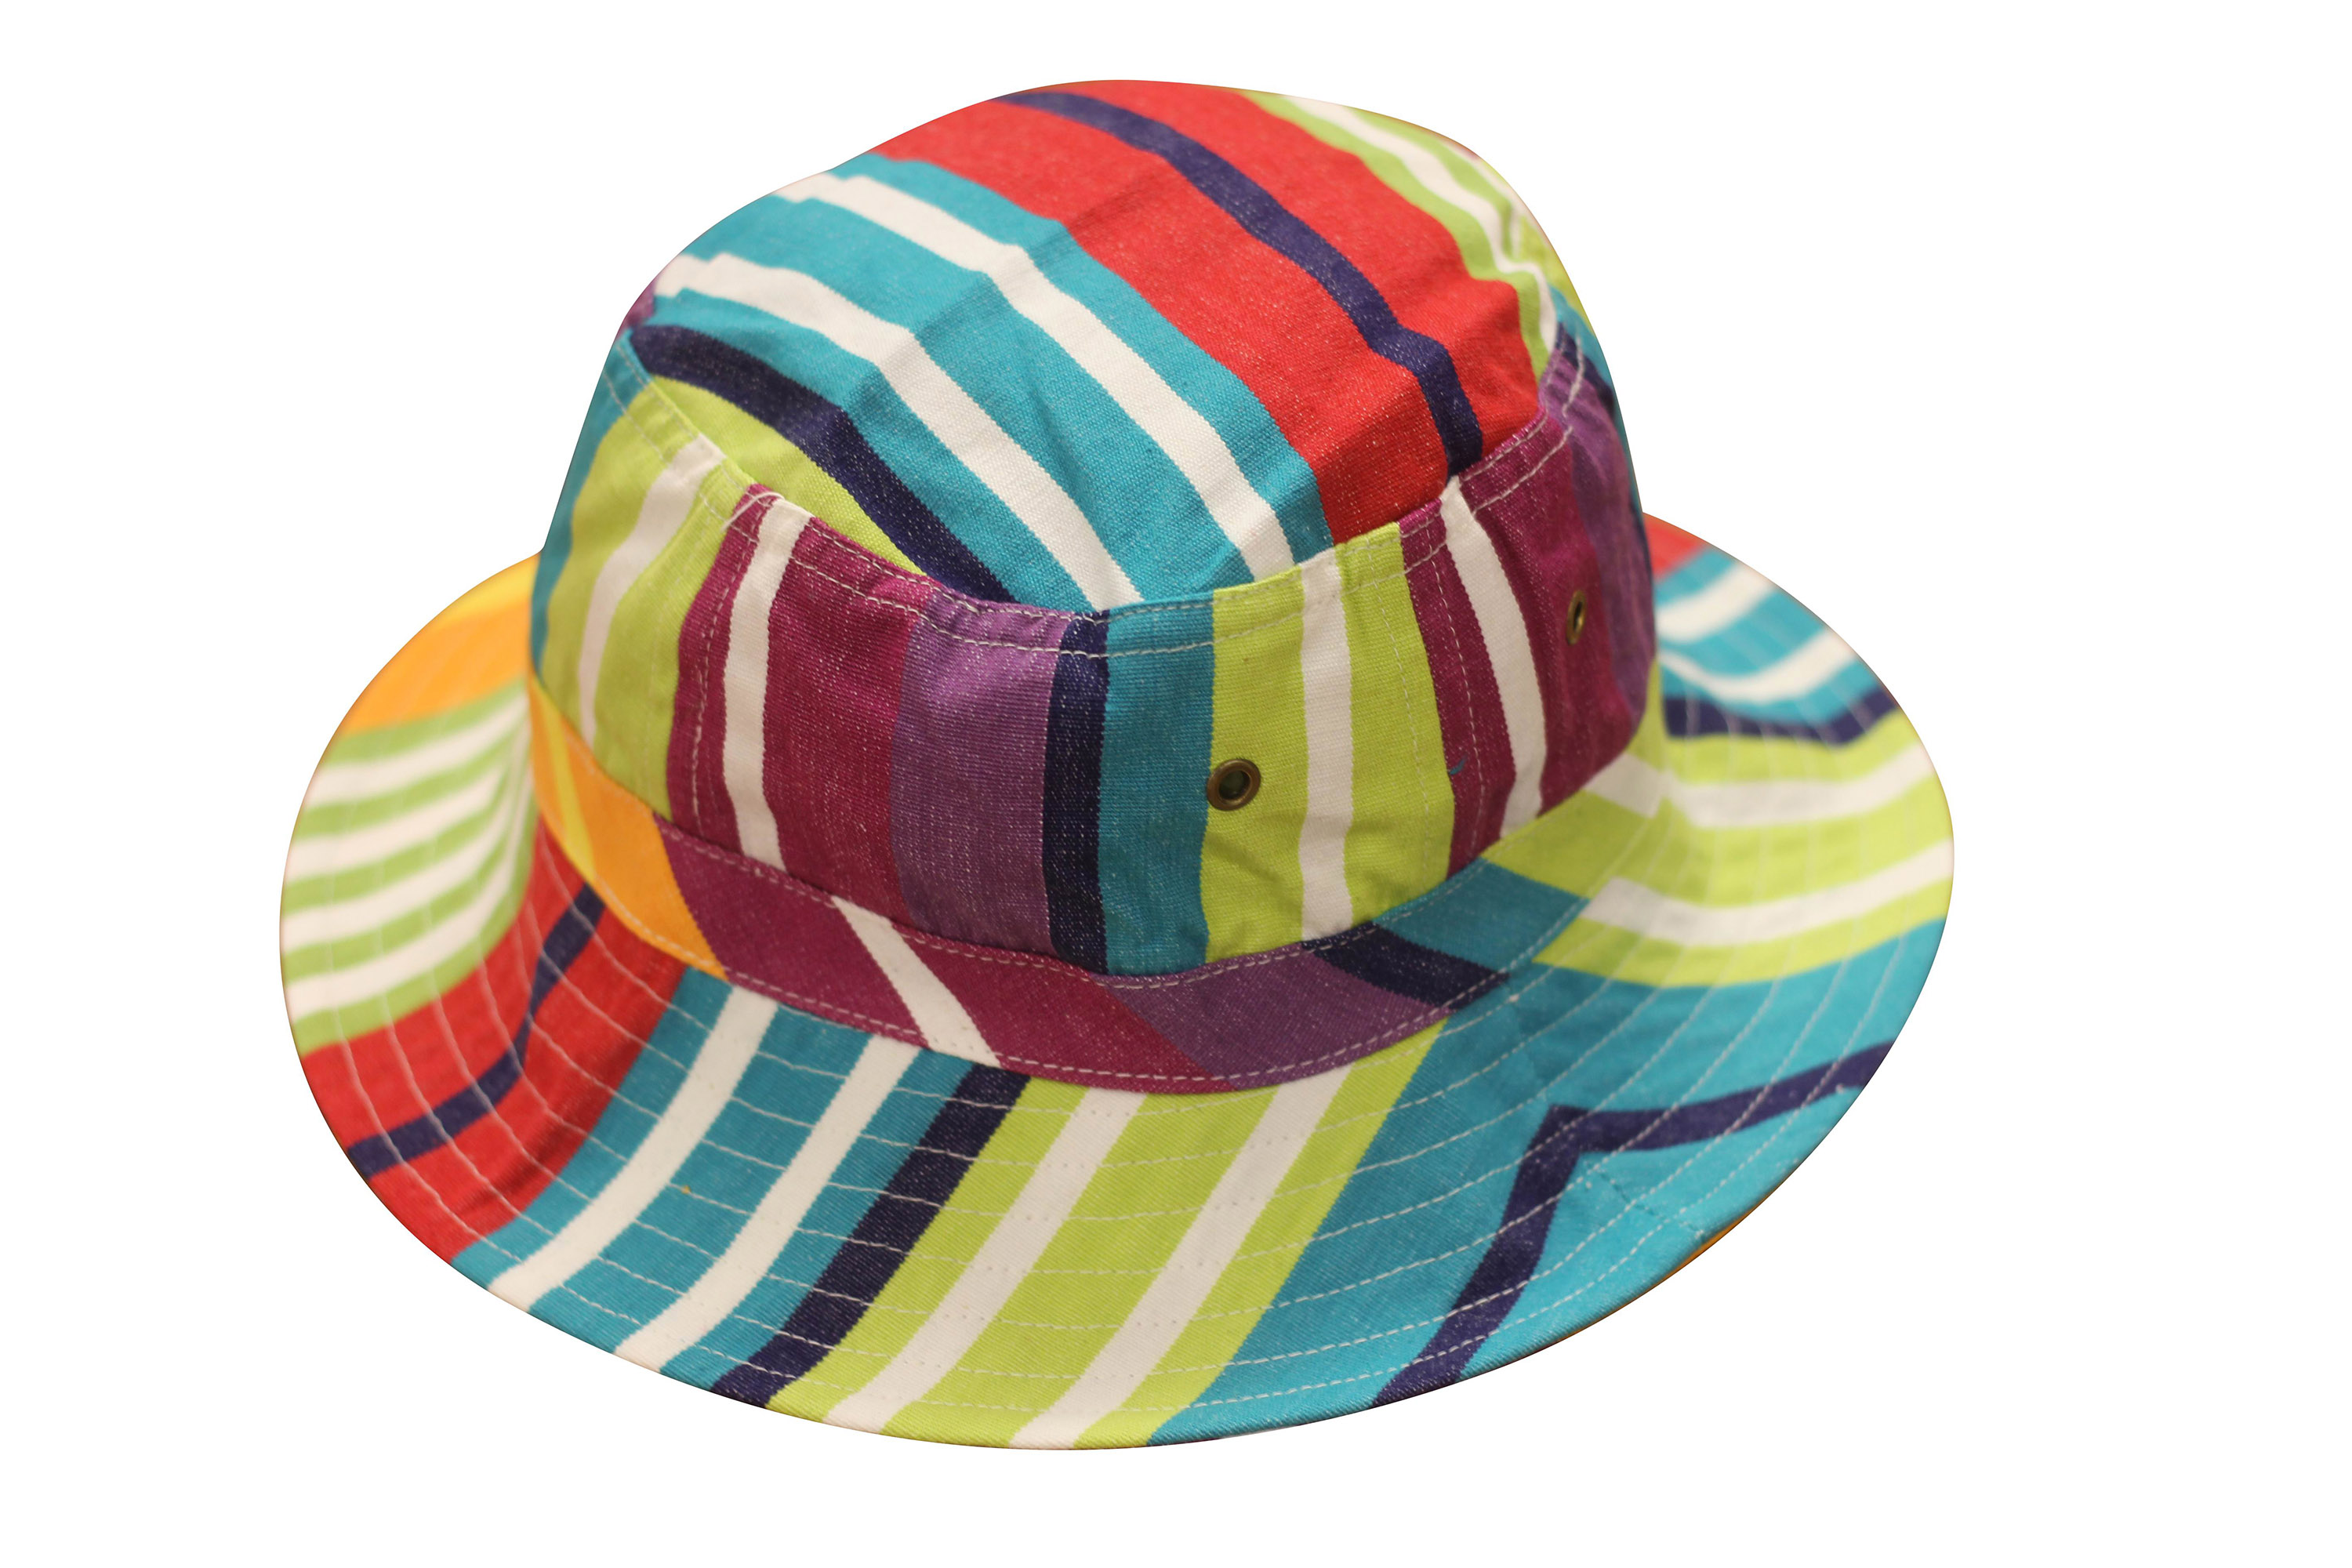 Turquoise Striped Sun Hats | Sun Protection Hat  Aerobics Stripes